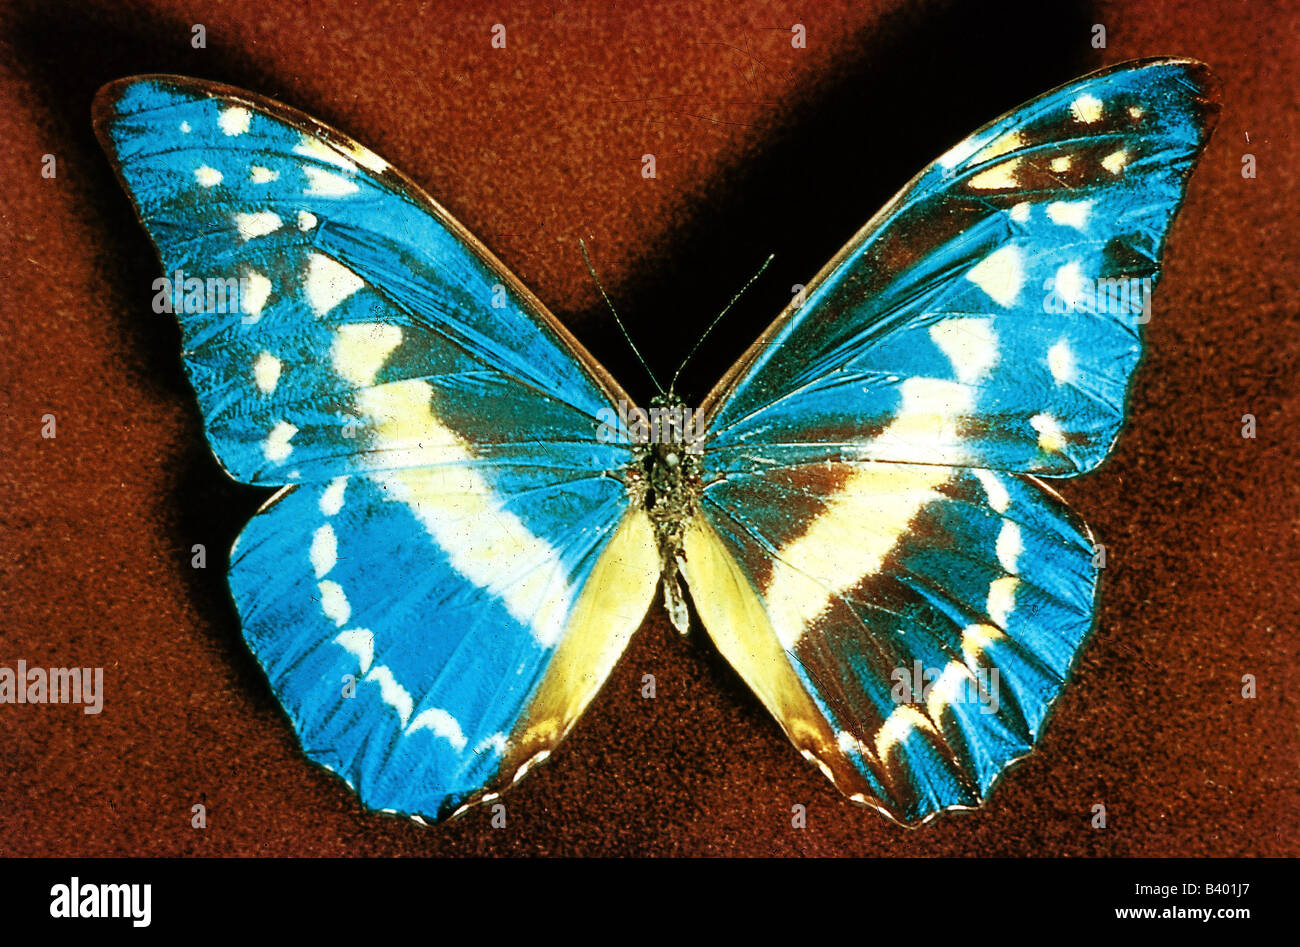 zoology / animals, insect, butterflies, Blue Morpho, (Morpho helena), distribution: Peru, butterfly, Lepidoptera, - Stock Image